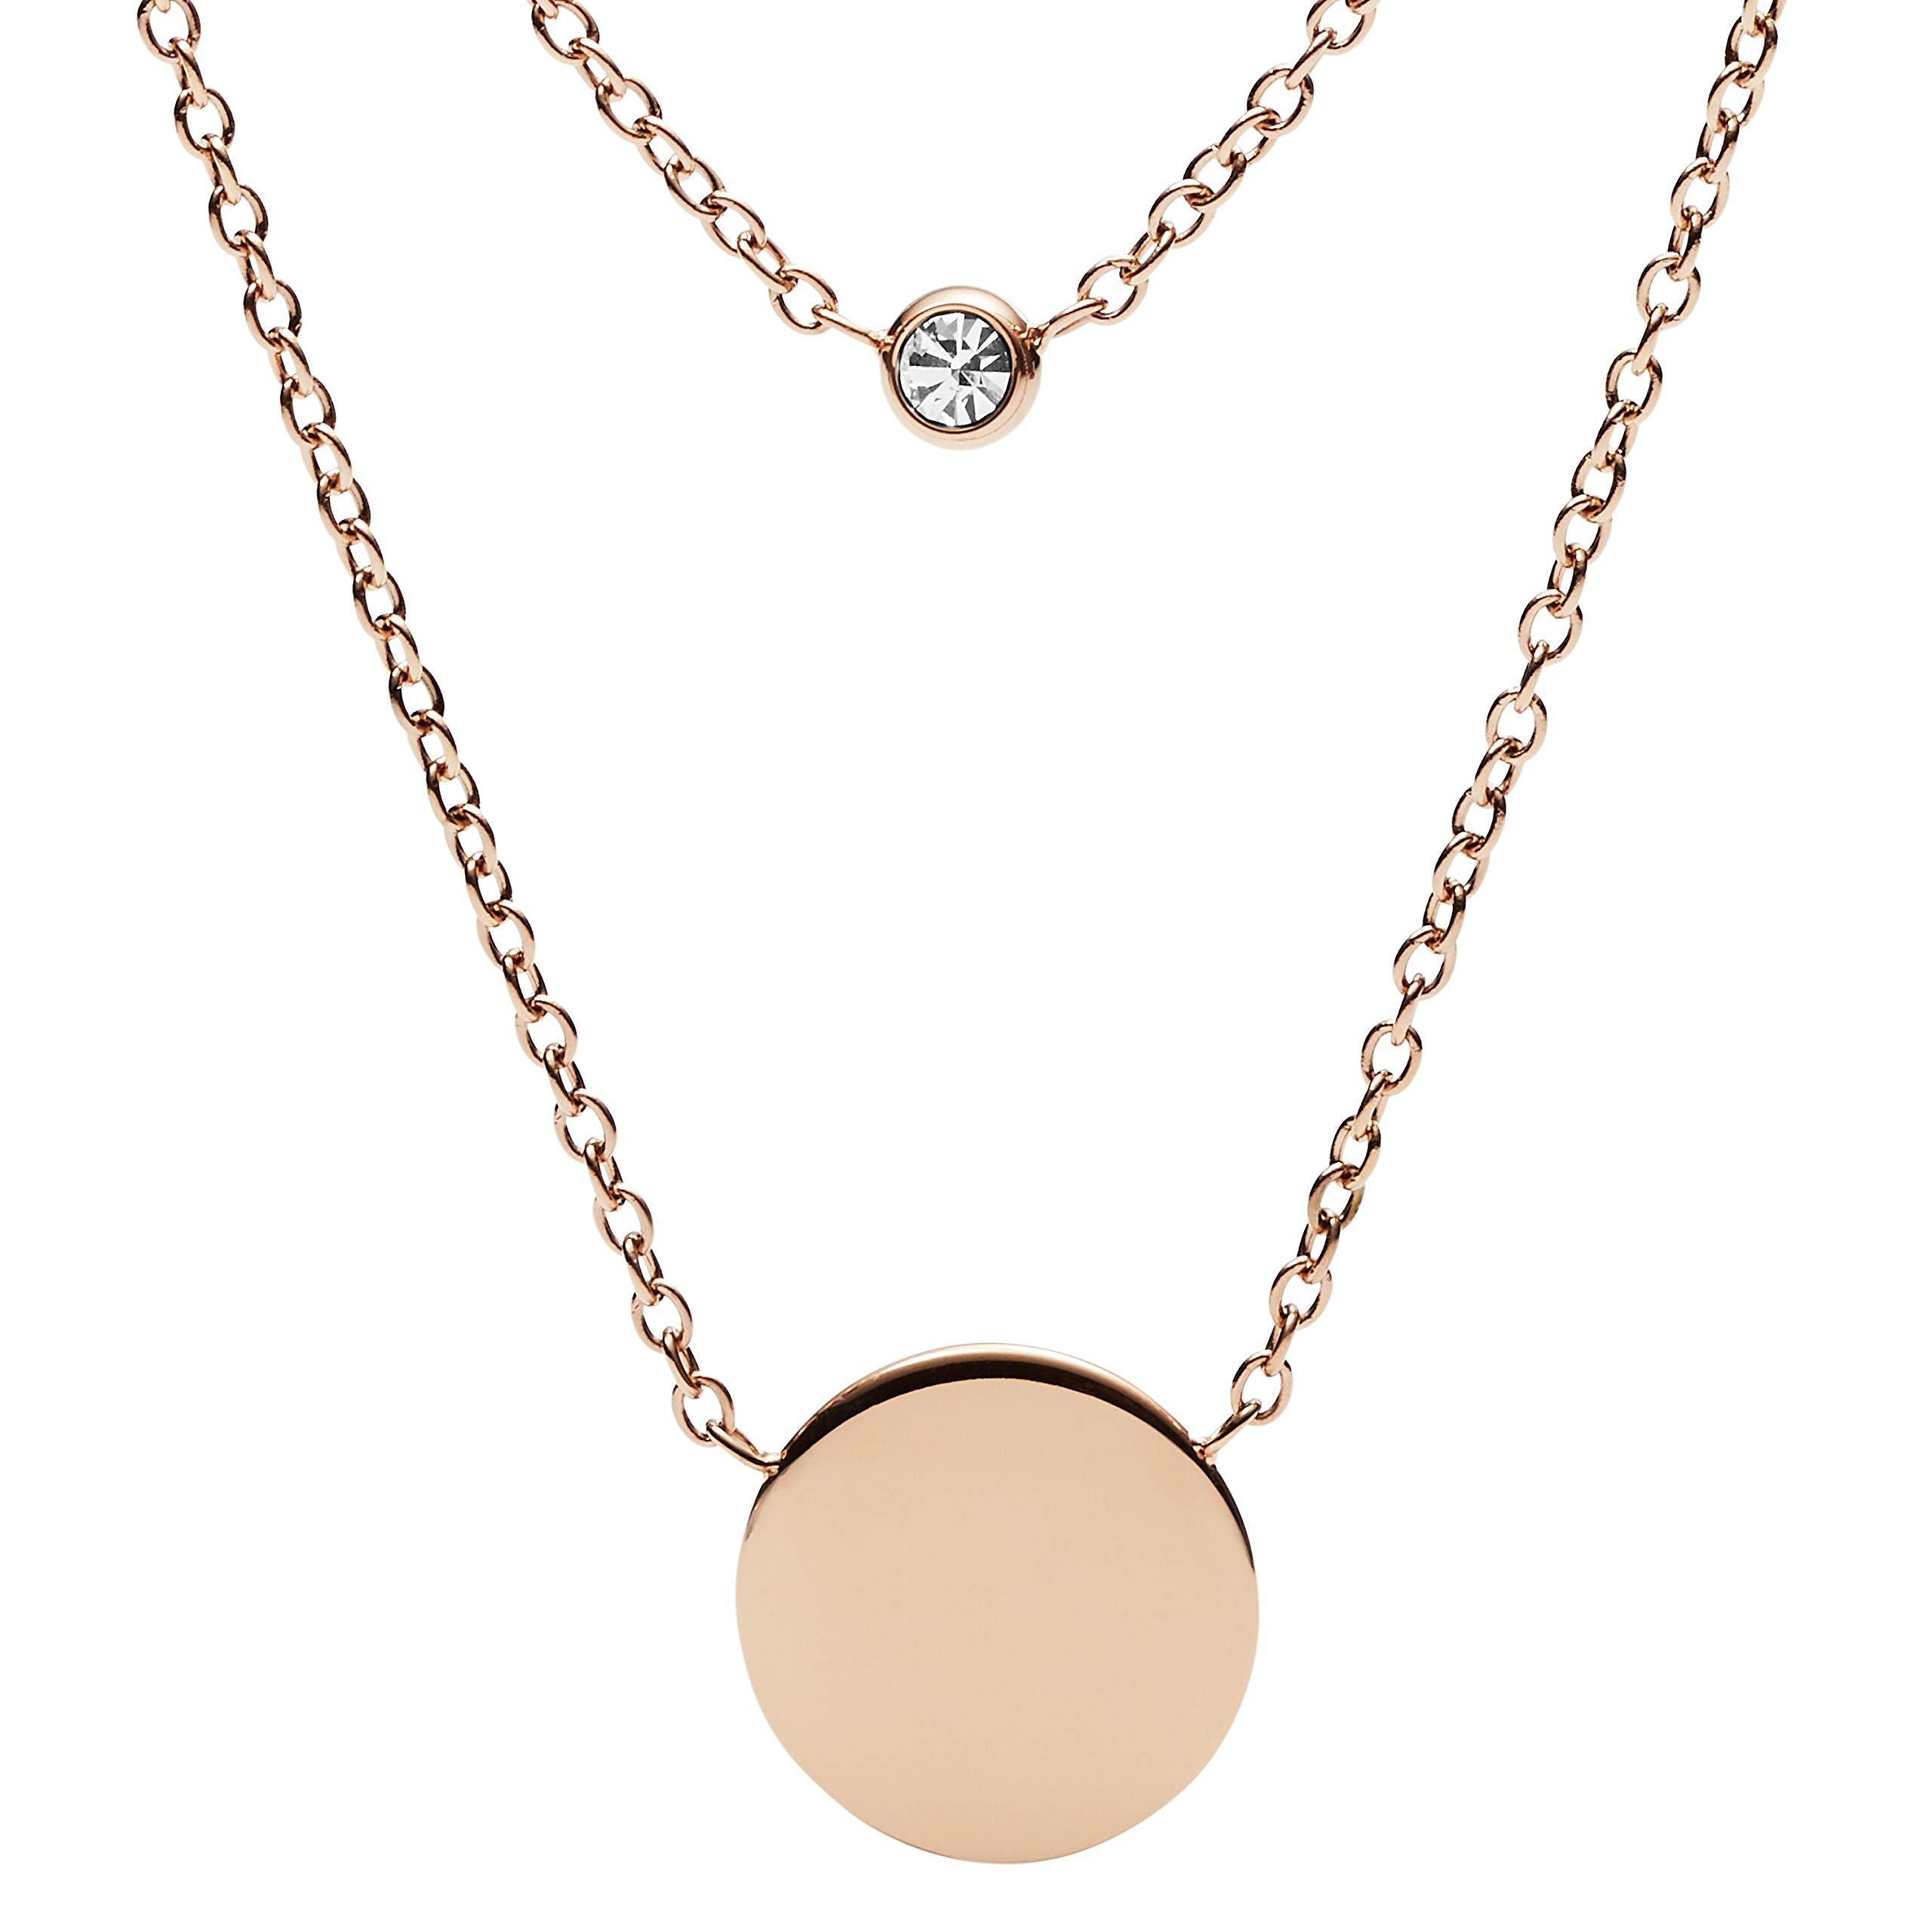 ویکالا · خرید  اصل اورجینال · خرید از آمازون · Fossil Women's Double Glitz Rose Gold-Tone Steel Necklace, One Size wekala · ویکالا